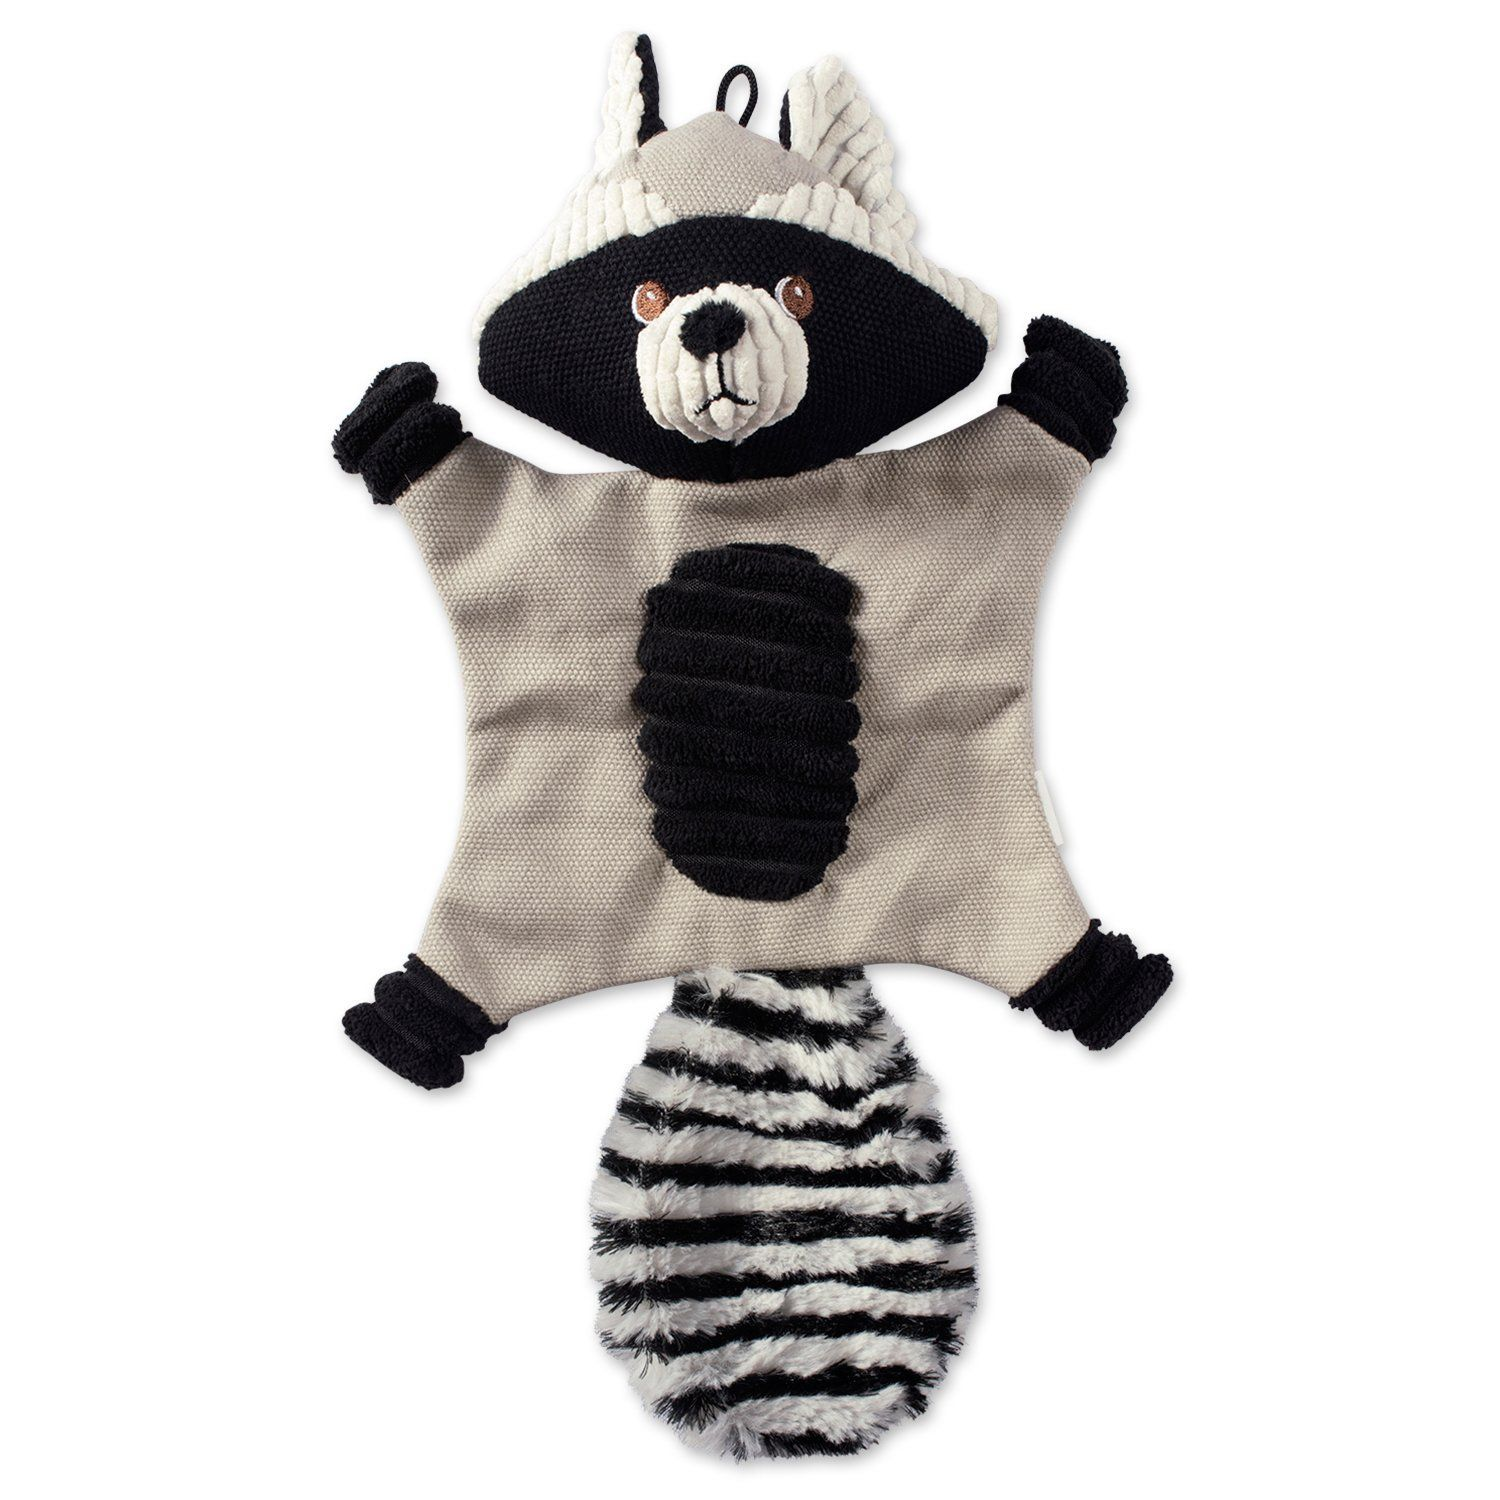 Dii Bone Dry Woodland Friends Squeaking Dog Toys Want To Know